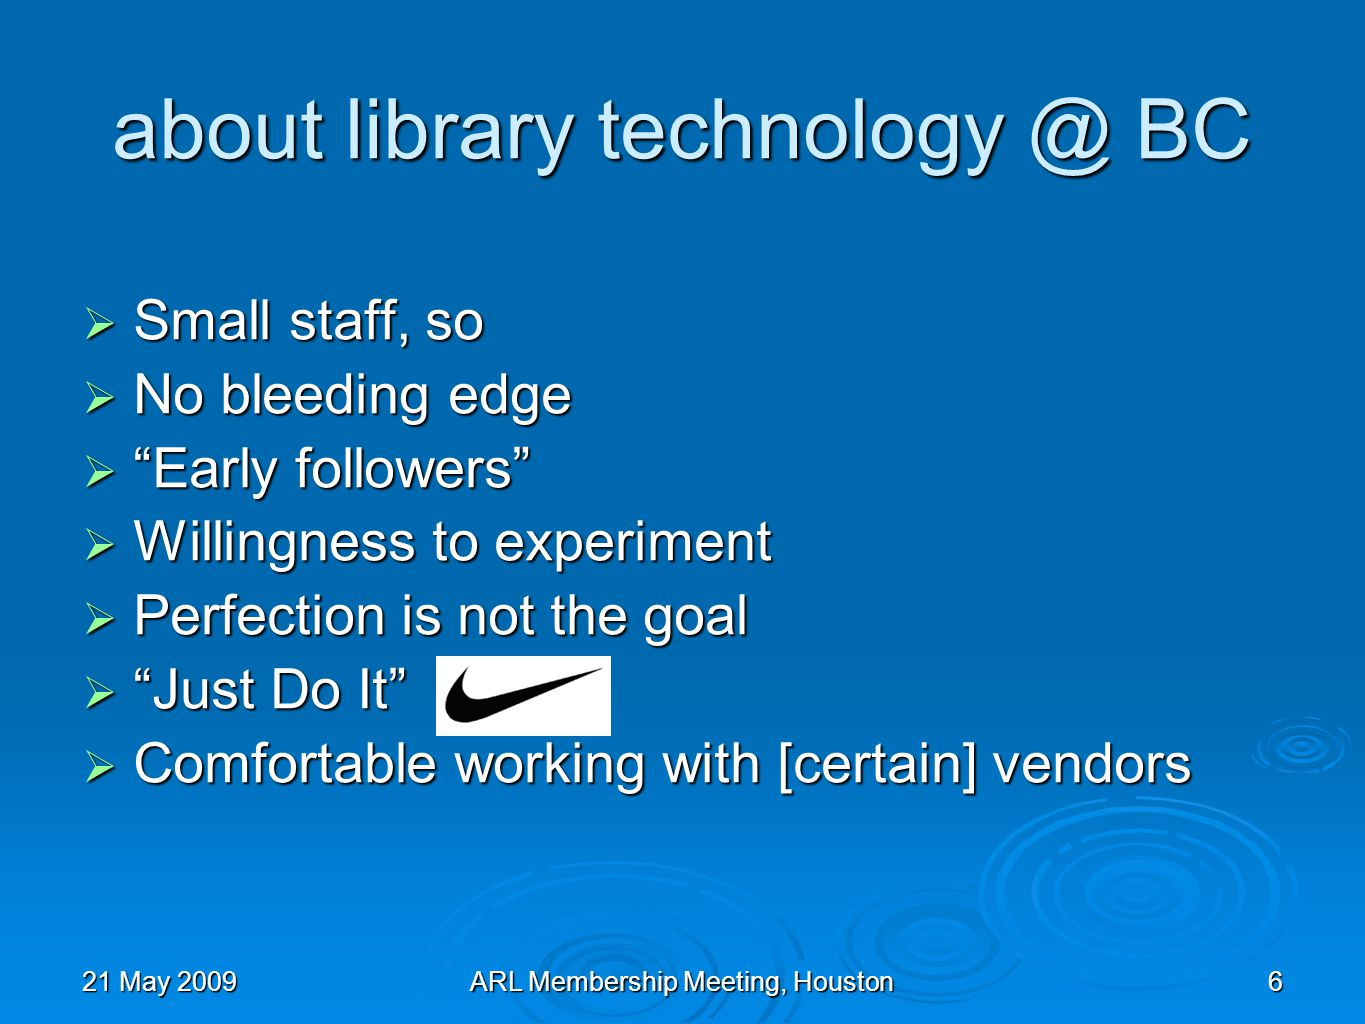 21 May 2009ARL Membership Meeting, Houston6 about library technology @ BC Small staff, so Small staff, so No bleeding edge No bleeding edge Early followers Early followers Willingness to experiment Willingness to experiment Perfection is not the goal Perfection is not the goal Just Do It Just Do It Comfortable working with [certain] vendors Comfortable working with [certain] vendors